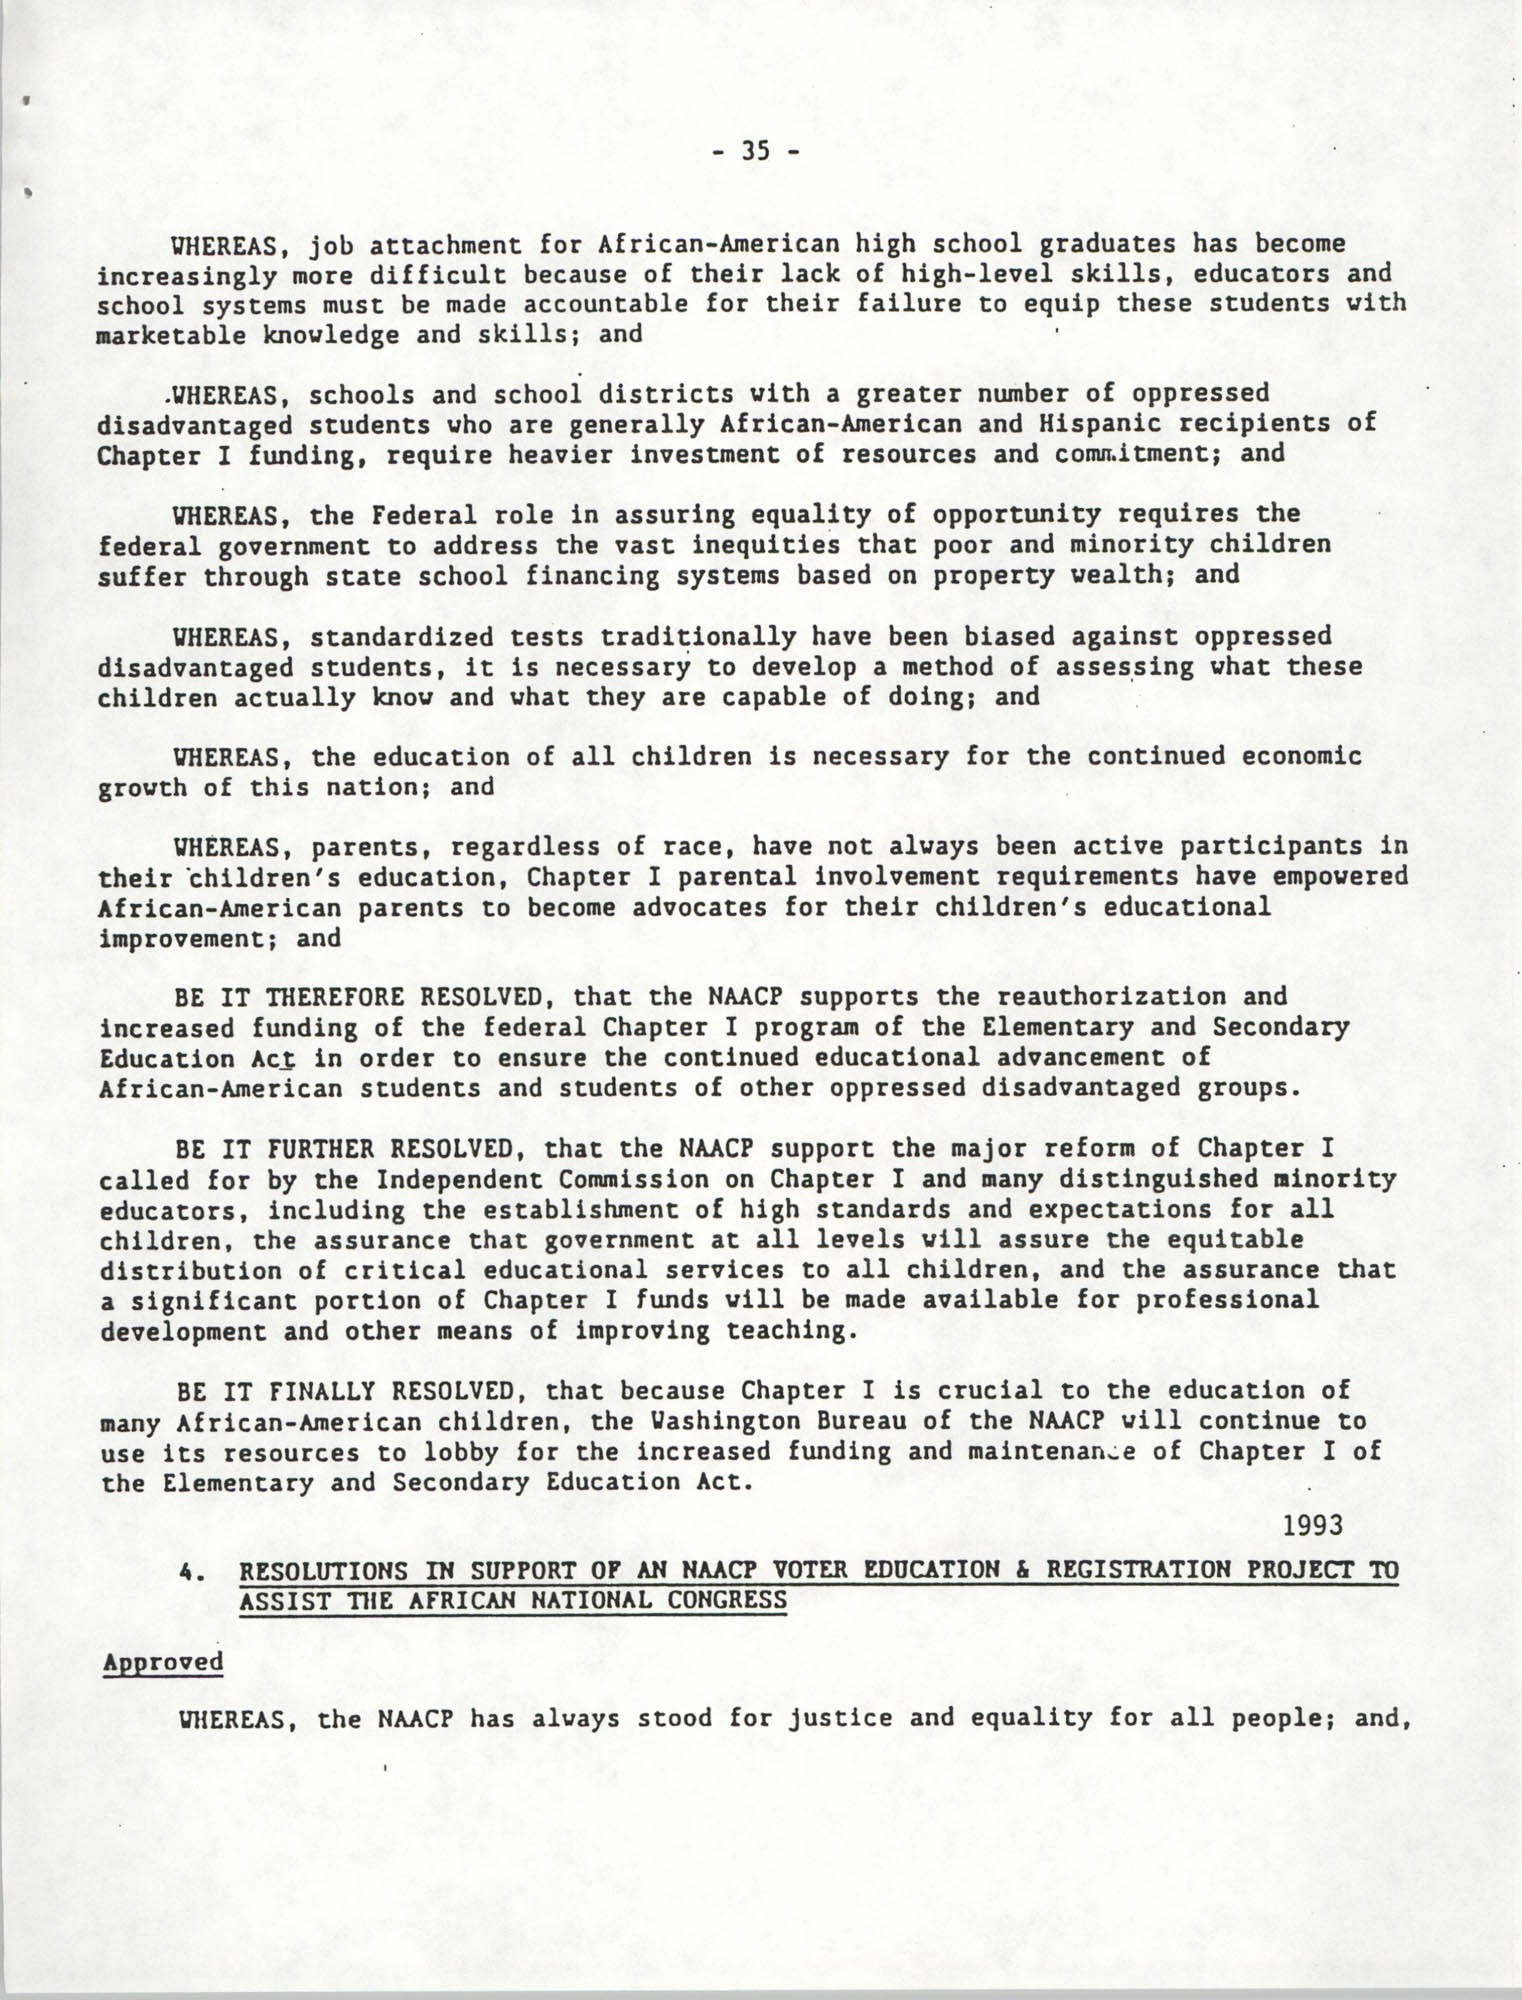 Education Resolutions 1993, Page 35